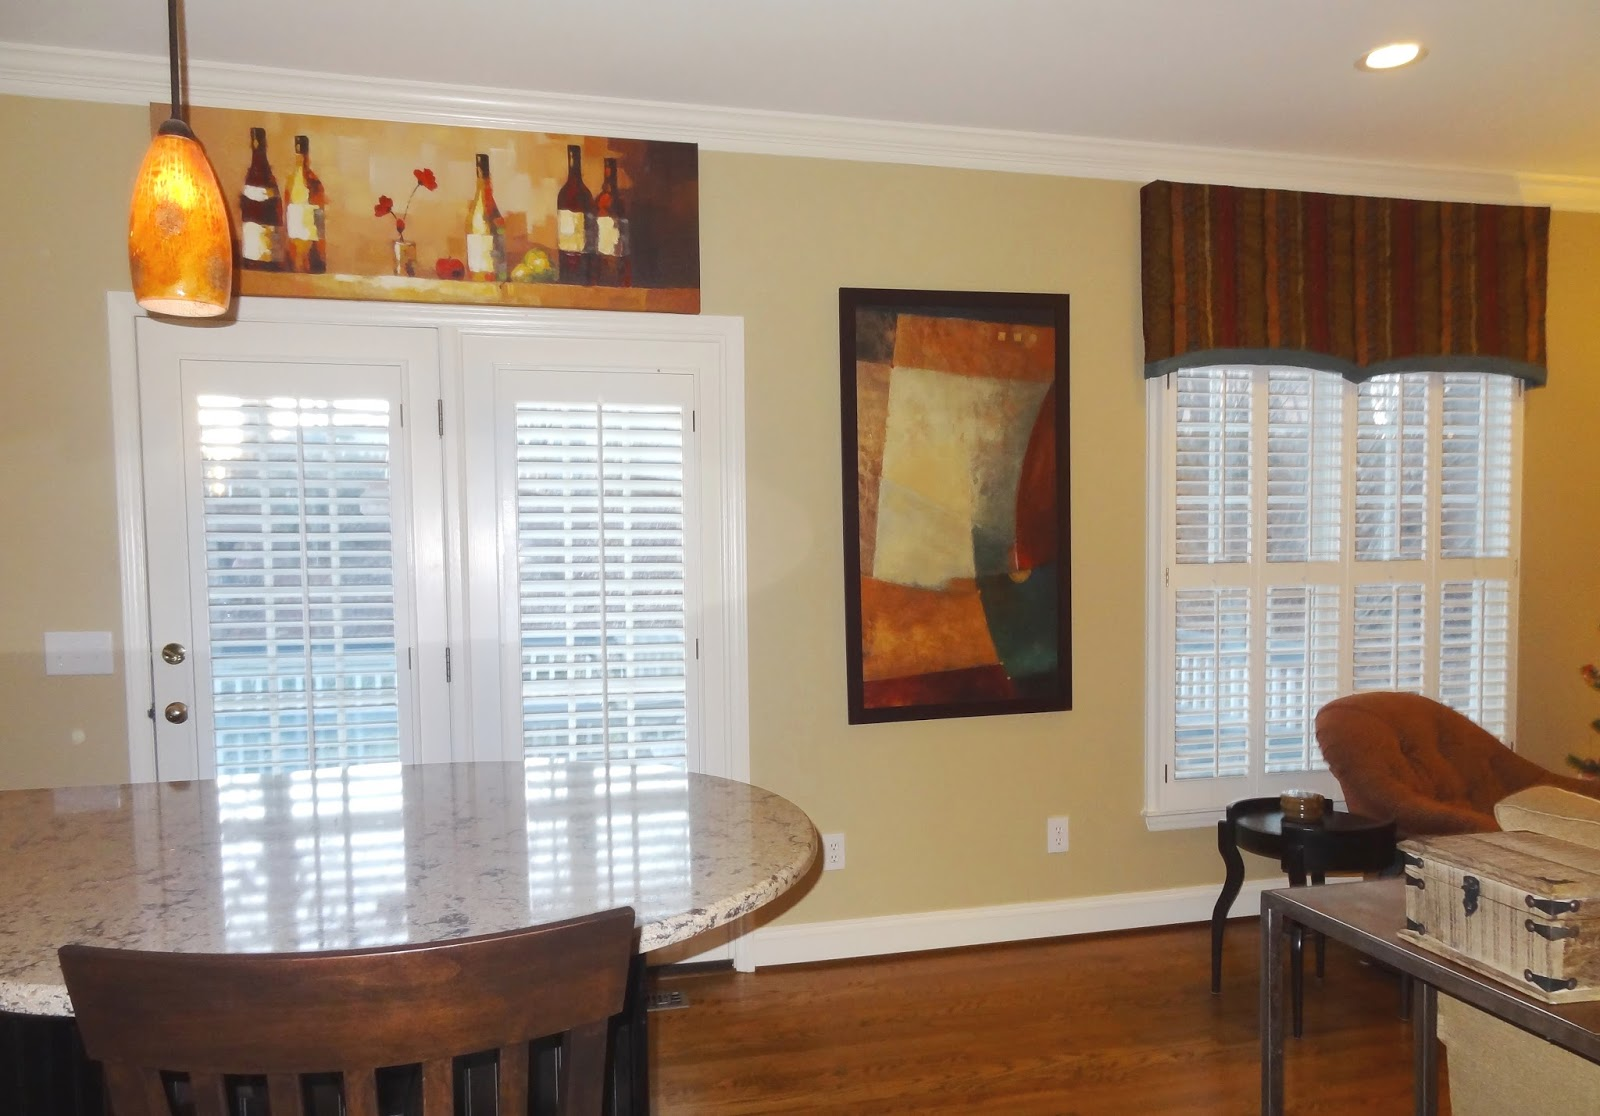 Window valance over shades or shutters can I use both? & Window valance over shades or shutters can I use both? - Interior ...